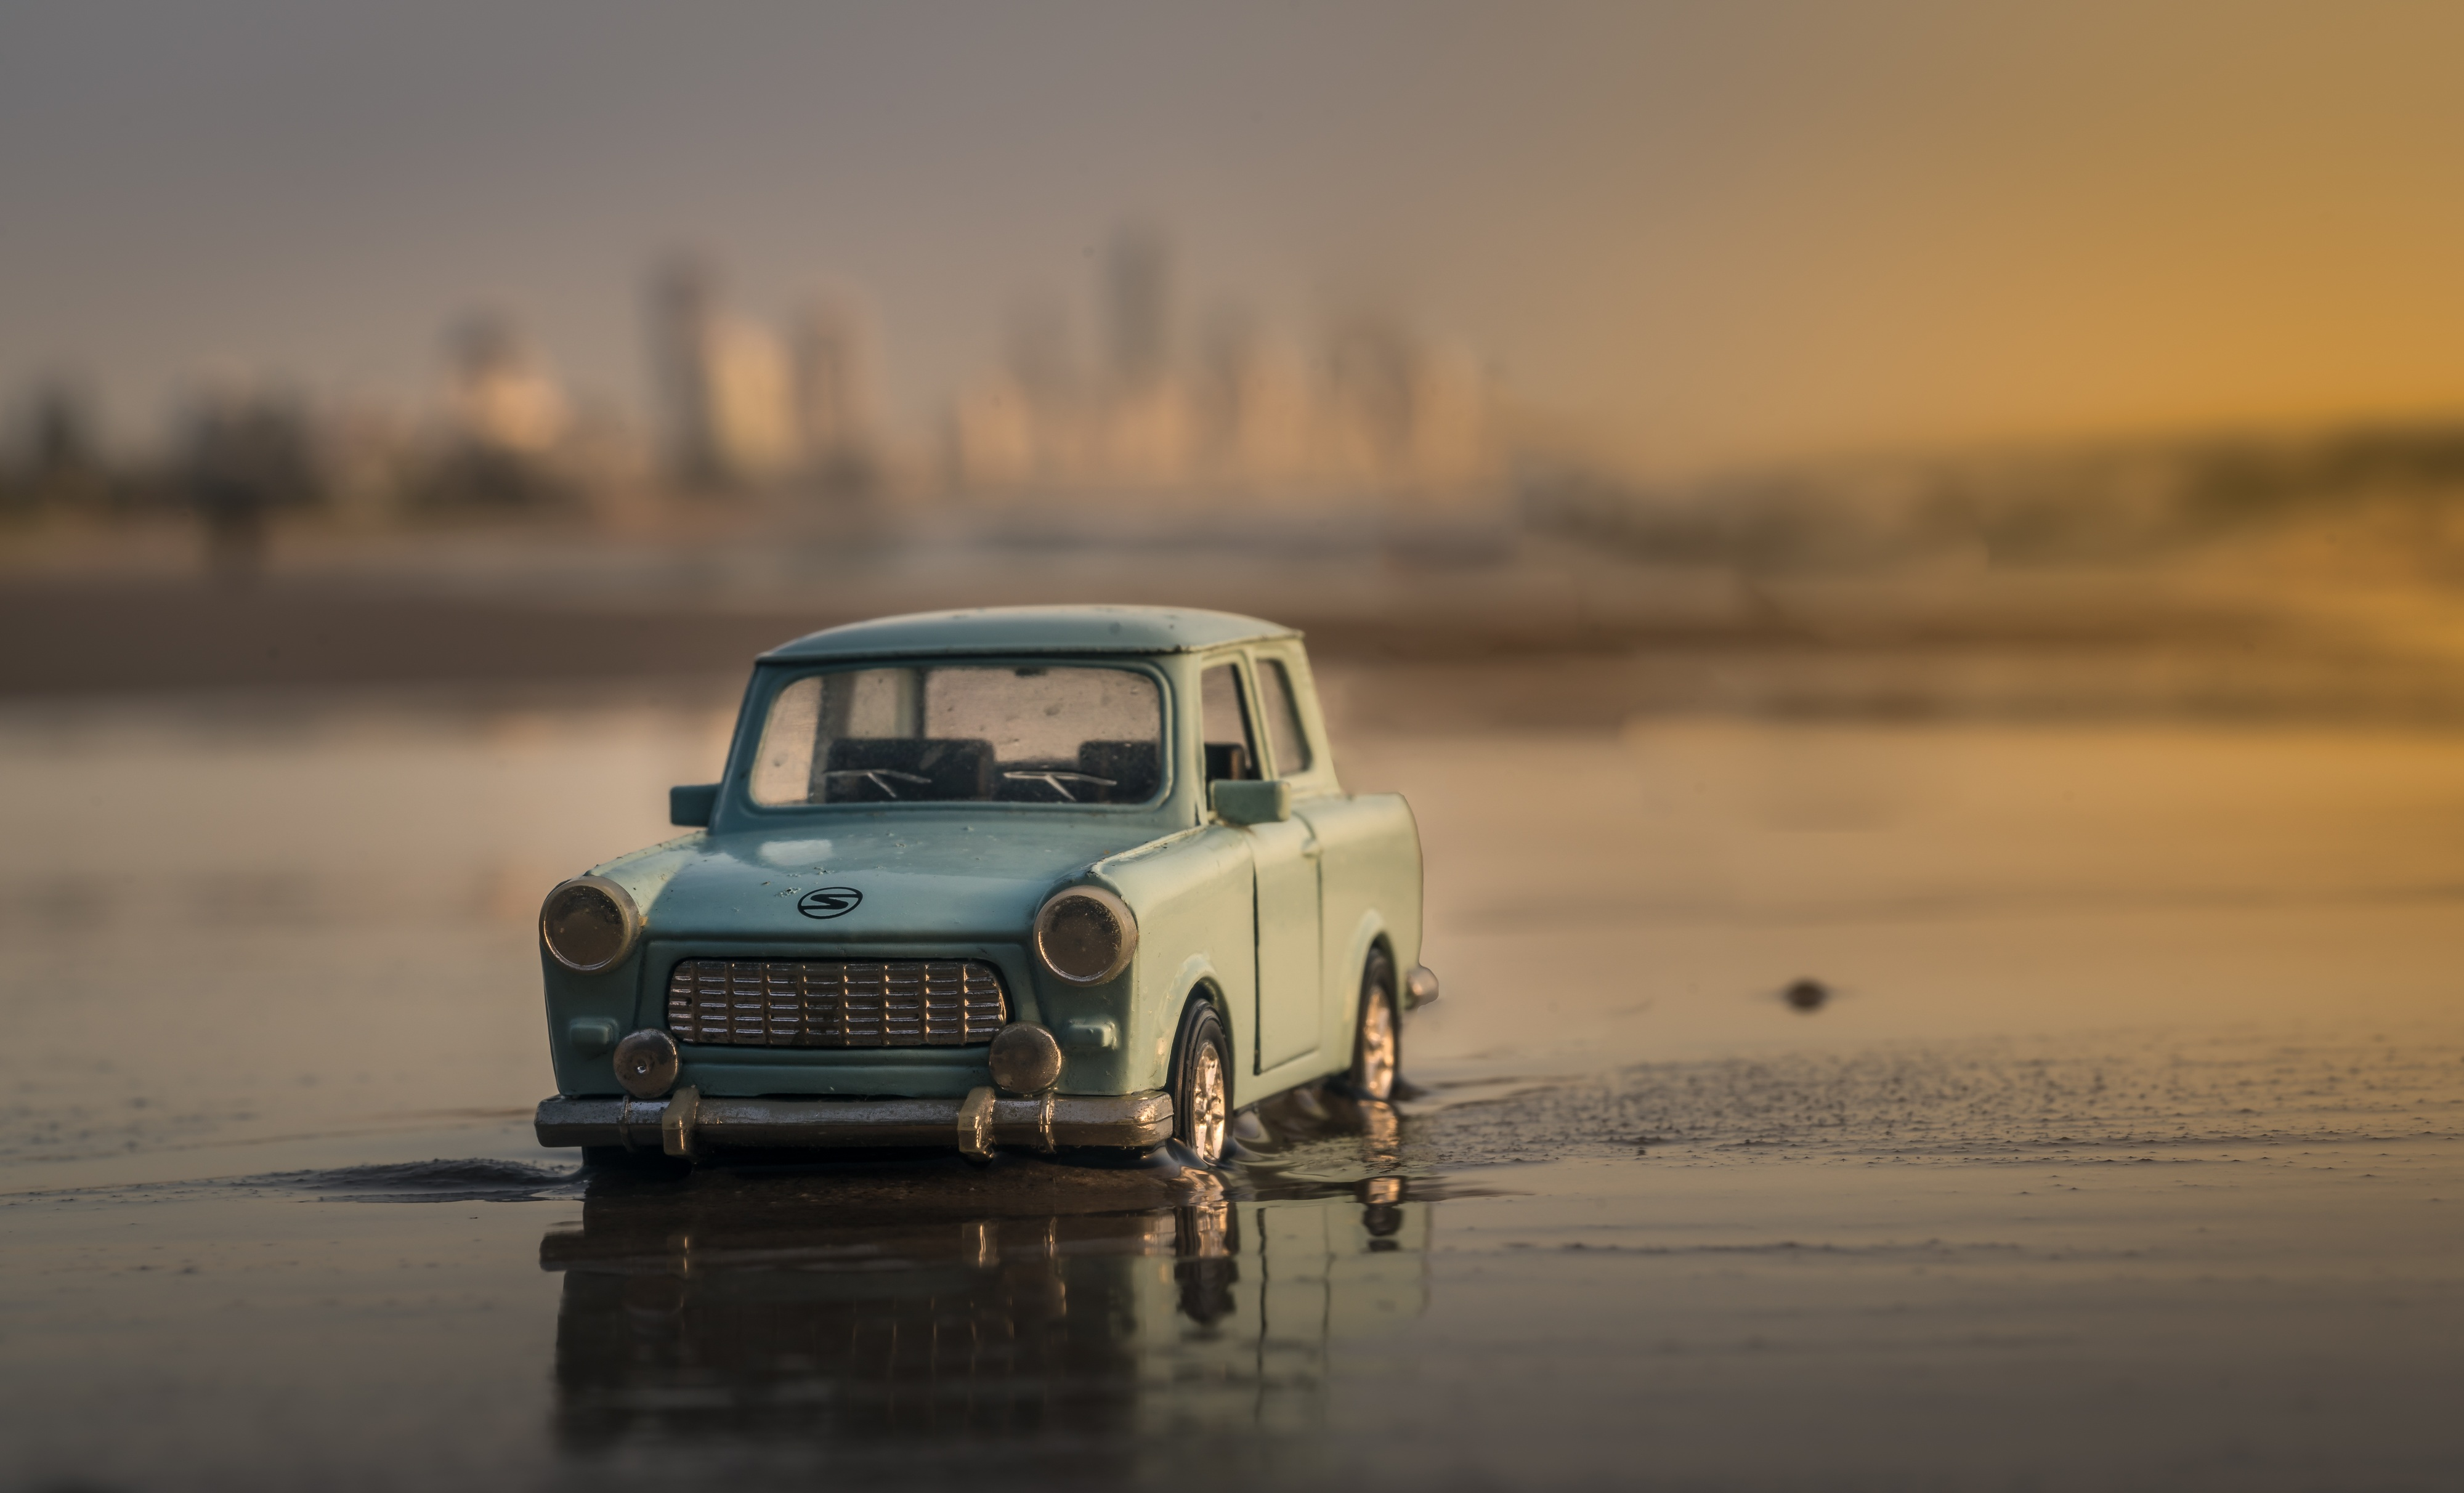 Old car on beach, Beach, Car, Common creative images, Free images, HQ Photo